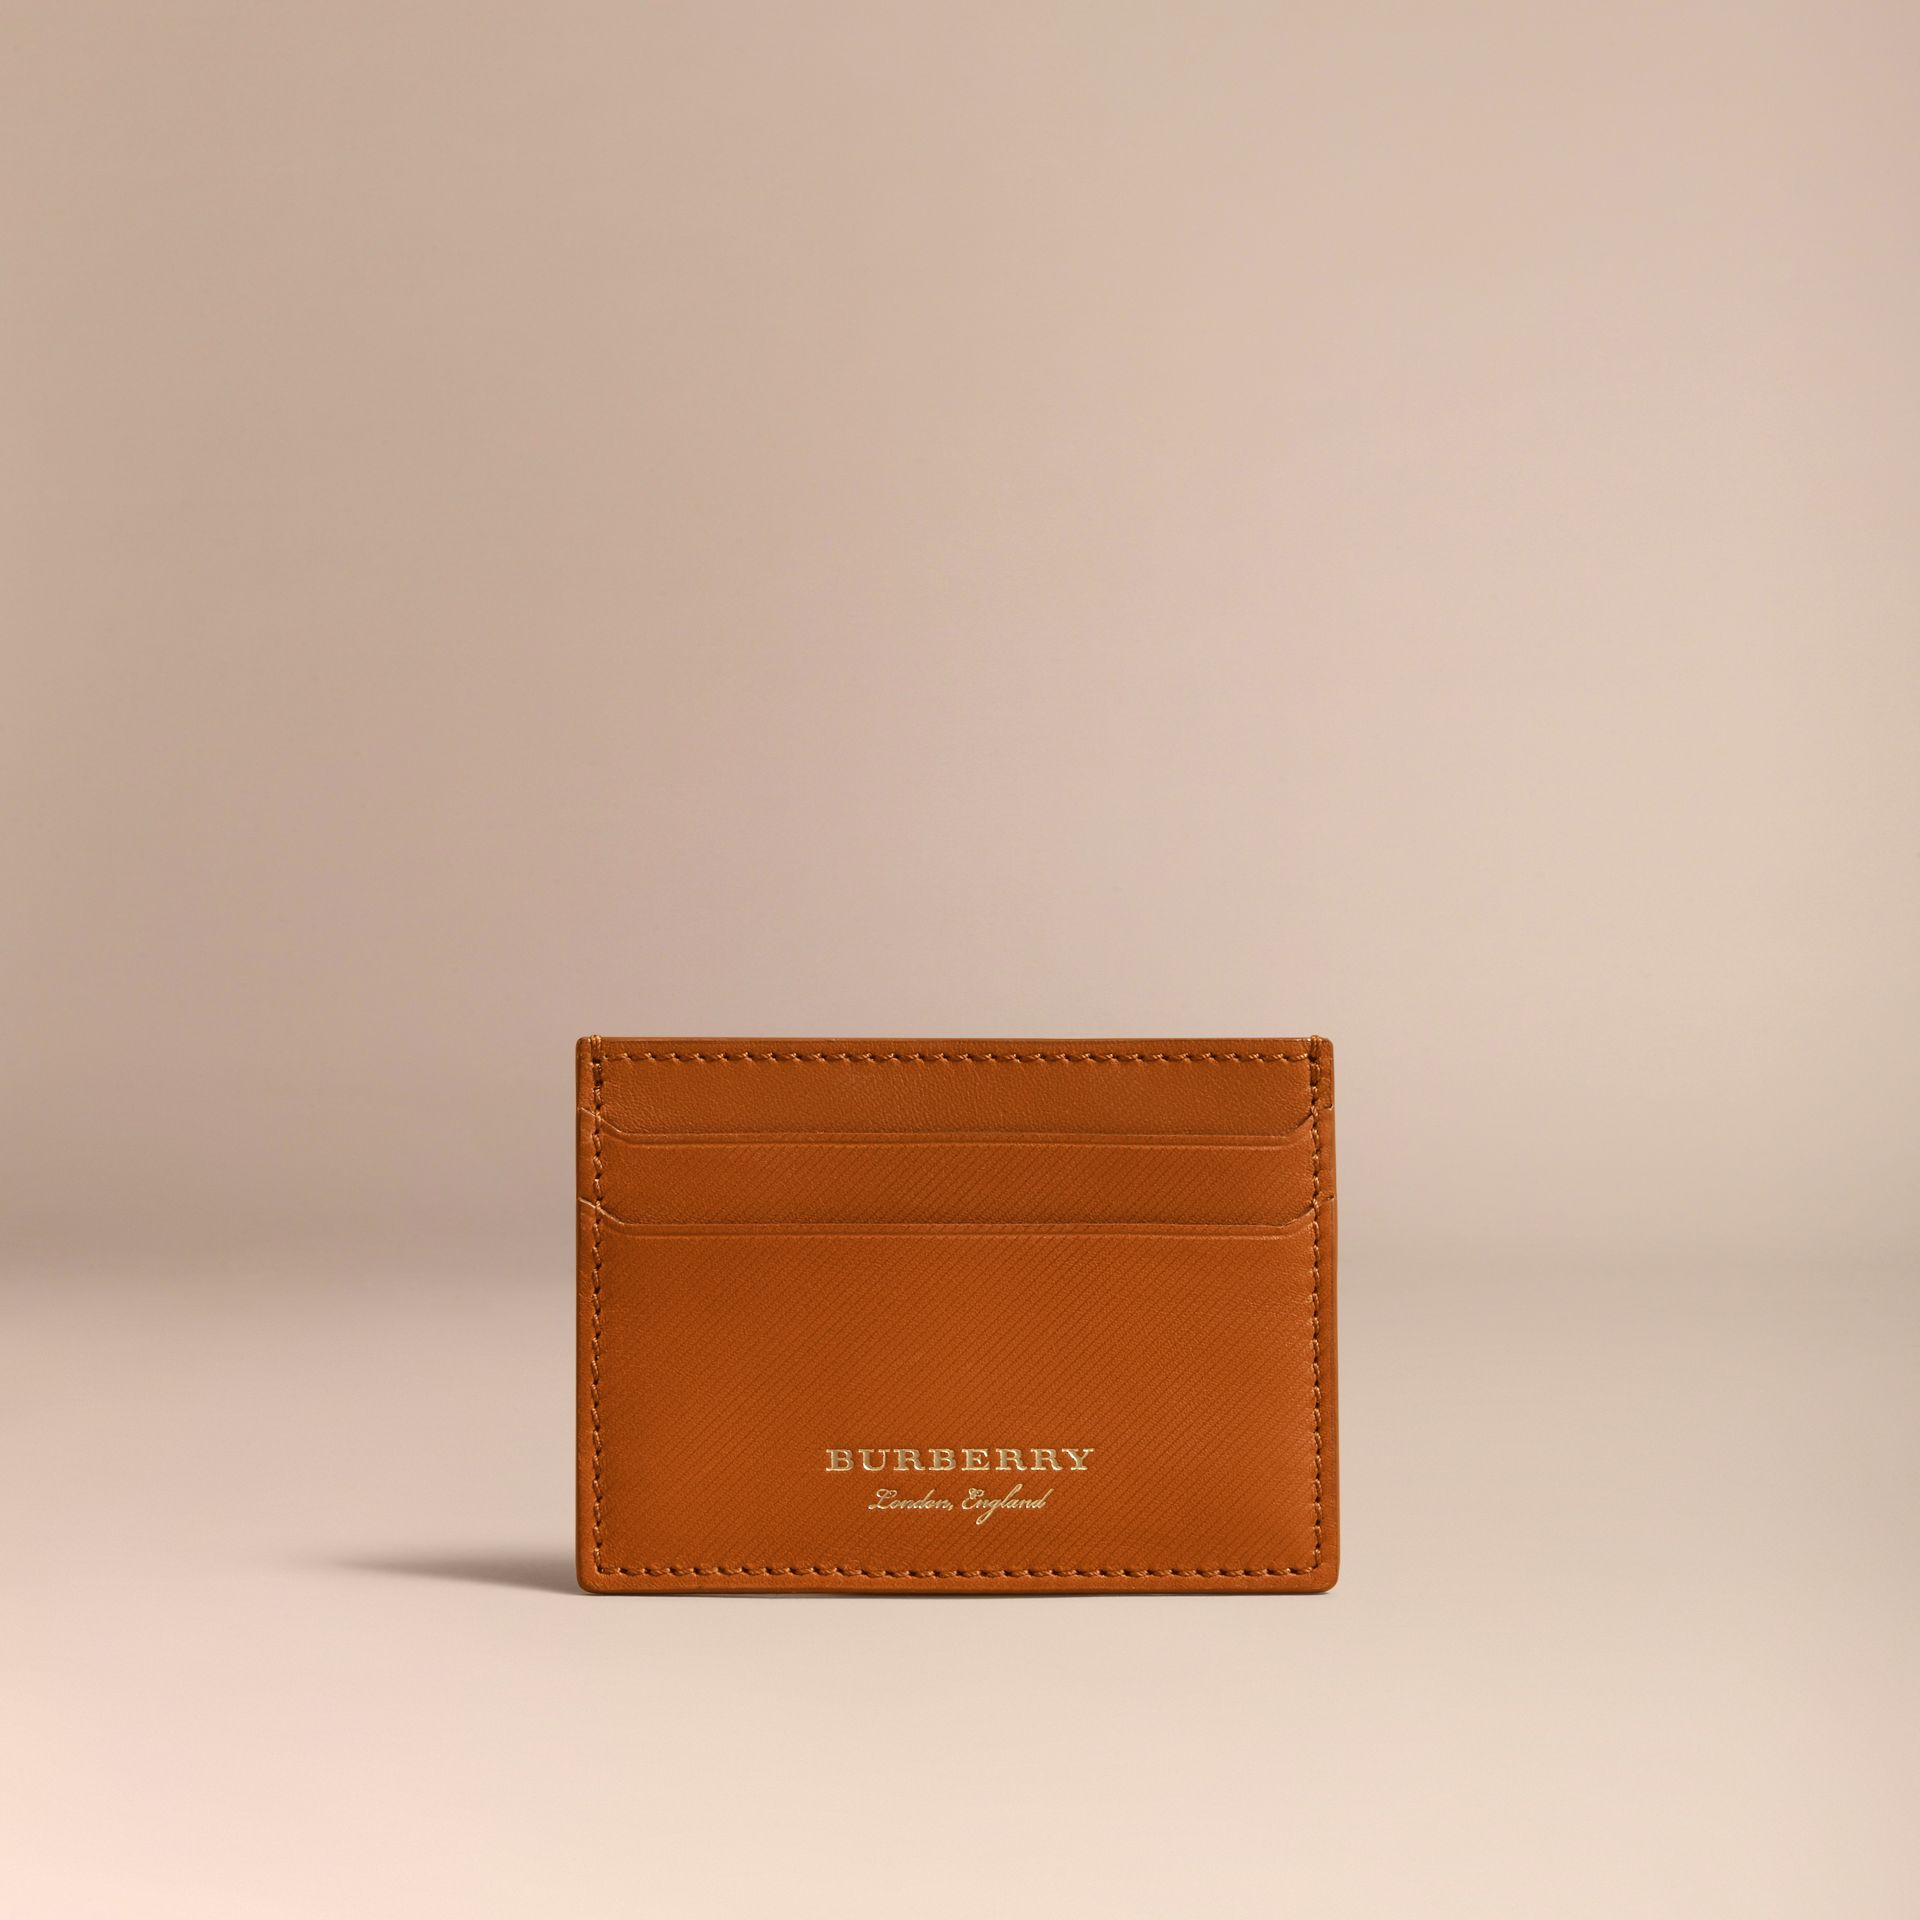 Trench Leather Card Case in Tan - Men | Burberry Hong Kong - gallery image 5